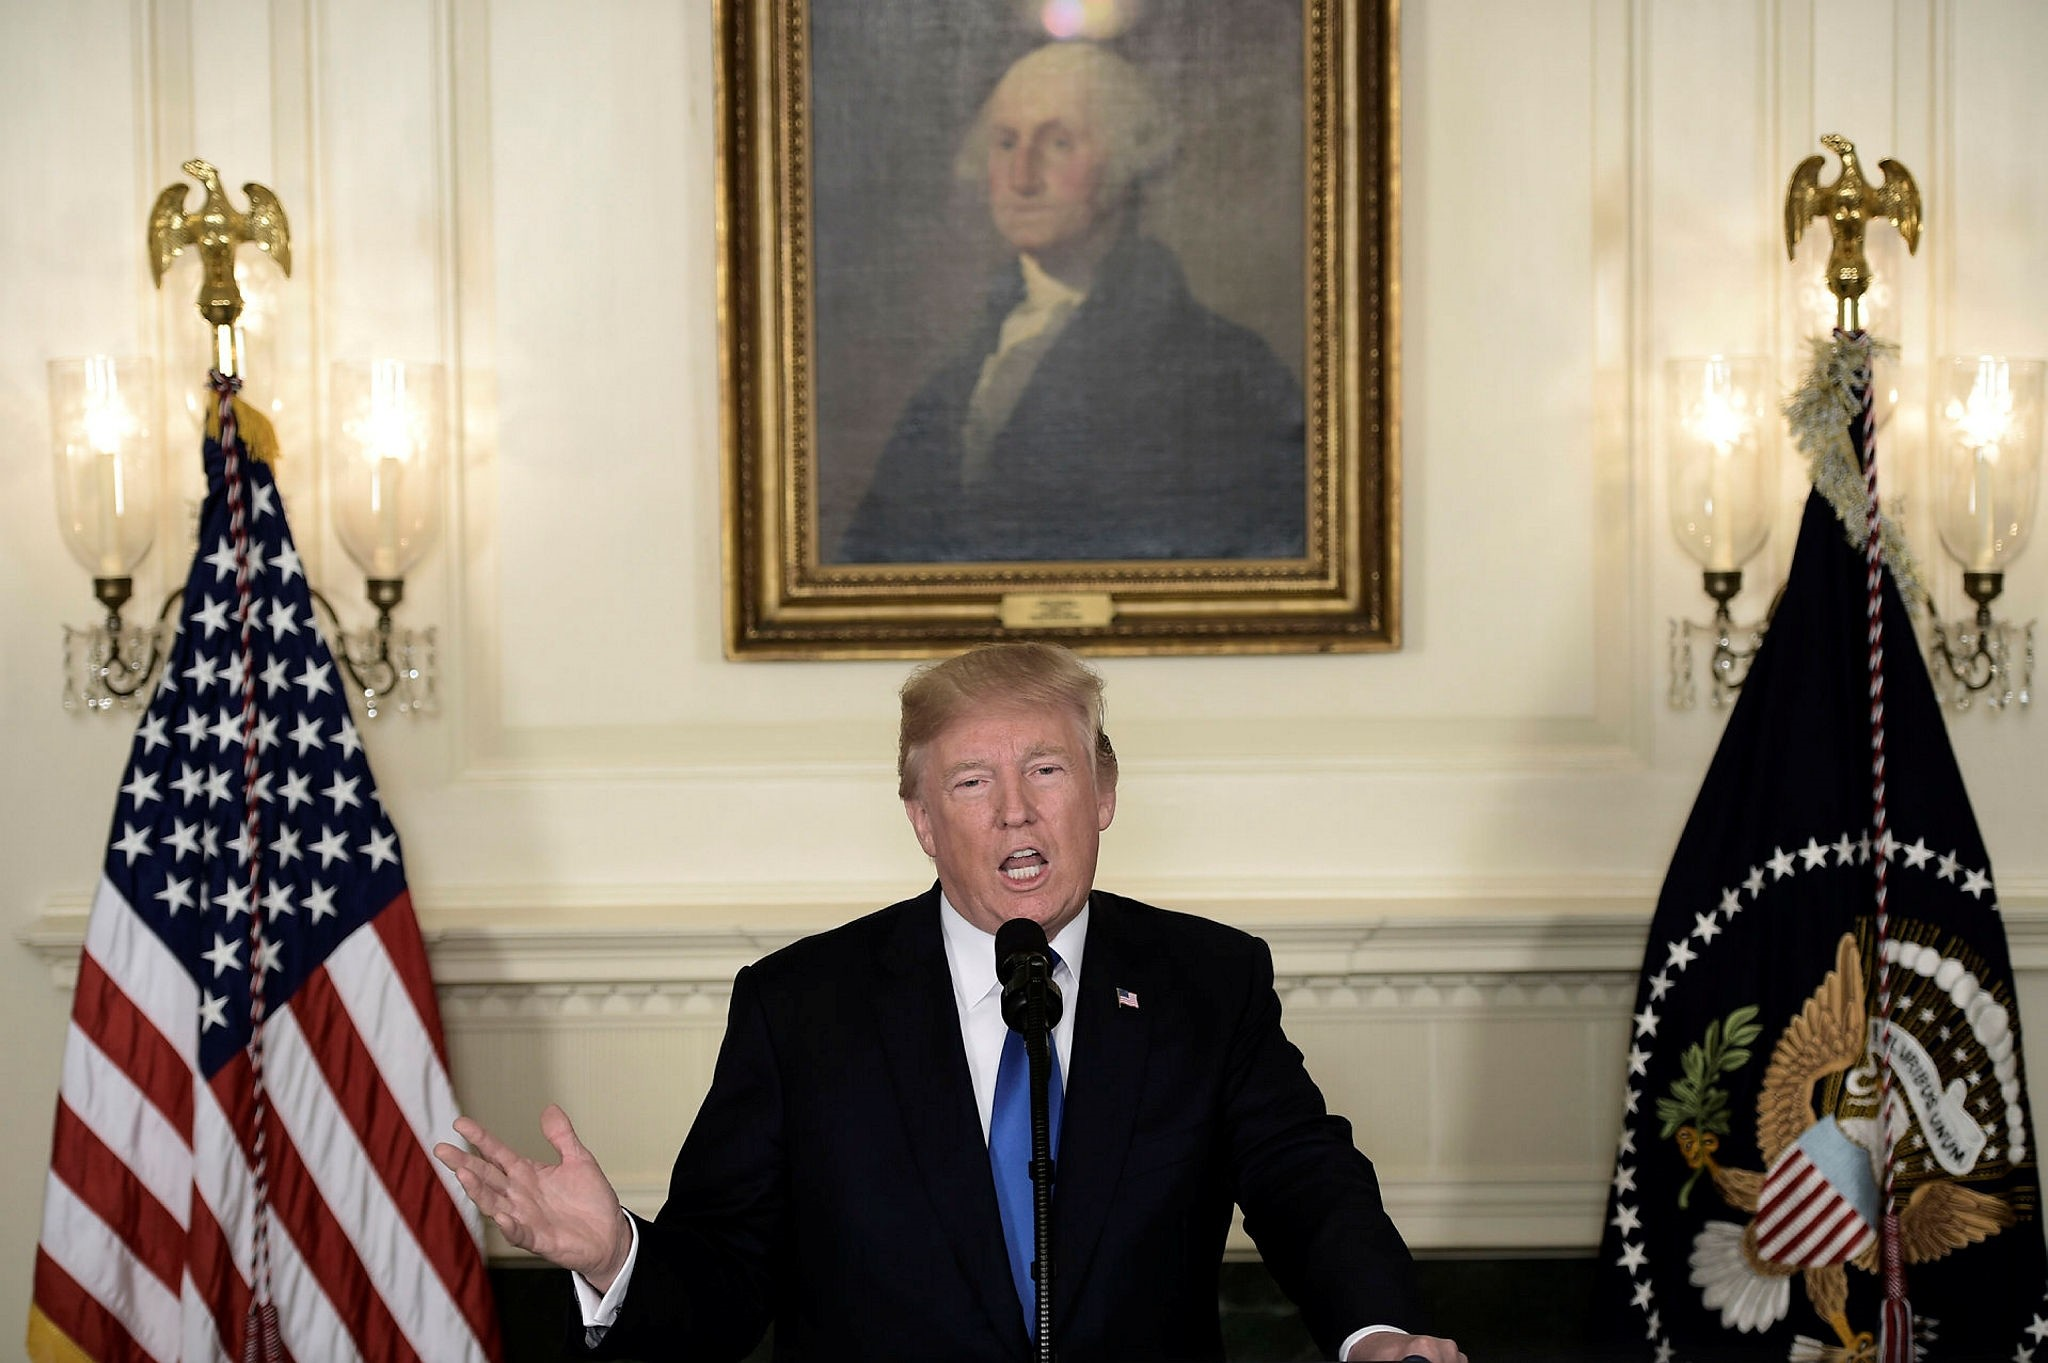 U.S. President Donald Trump speaks about the Iran deal from the Diplomatic Reception room of the White House in Washington, DC, Oct. 13, 2017.